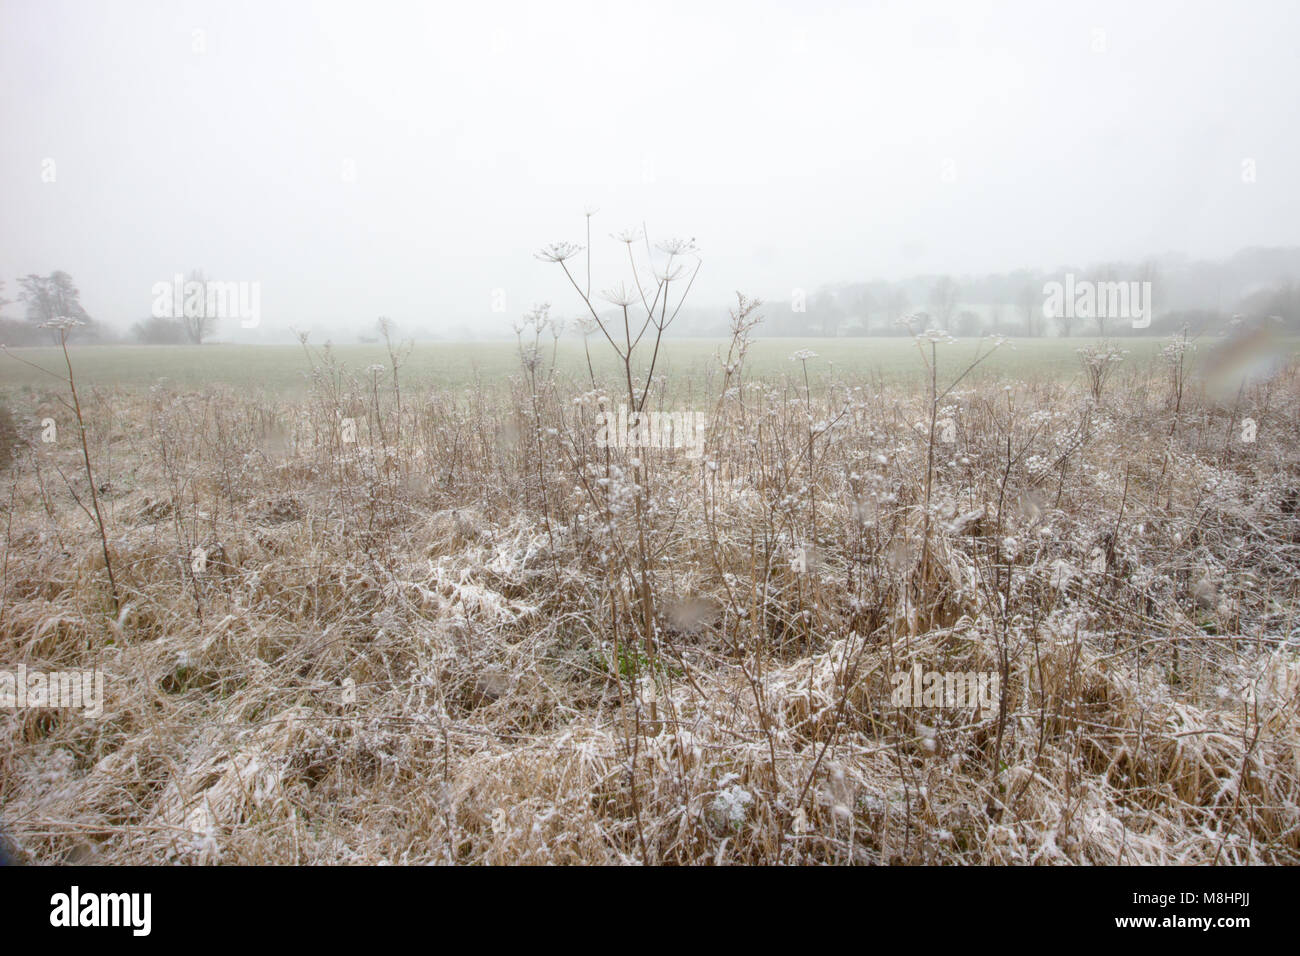 Tunbridge Wells sees a light dusting of snow on St Patricks day 2018 with a misty overcast day with limited visibility - Stock Image